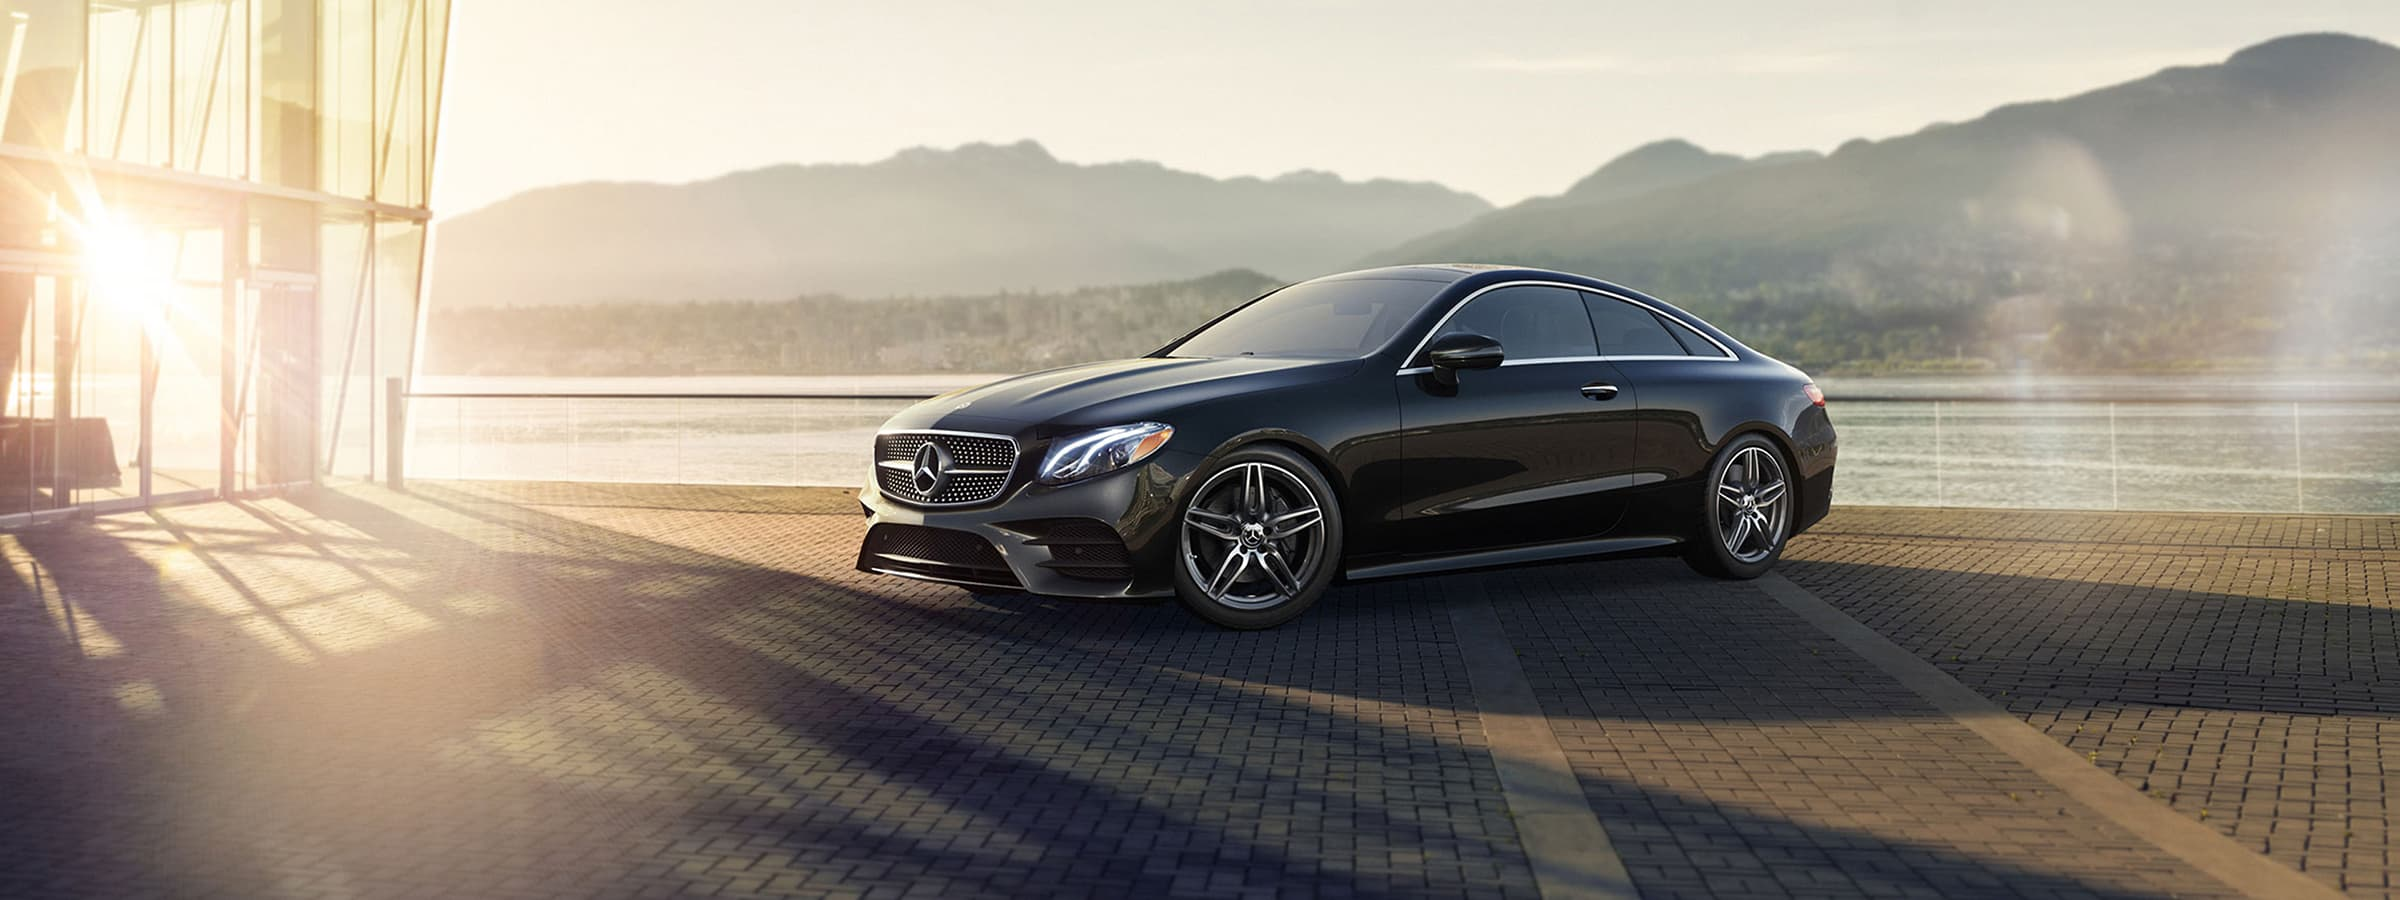 The 2019 E-Class Coupe